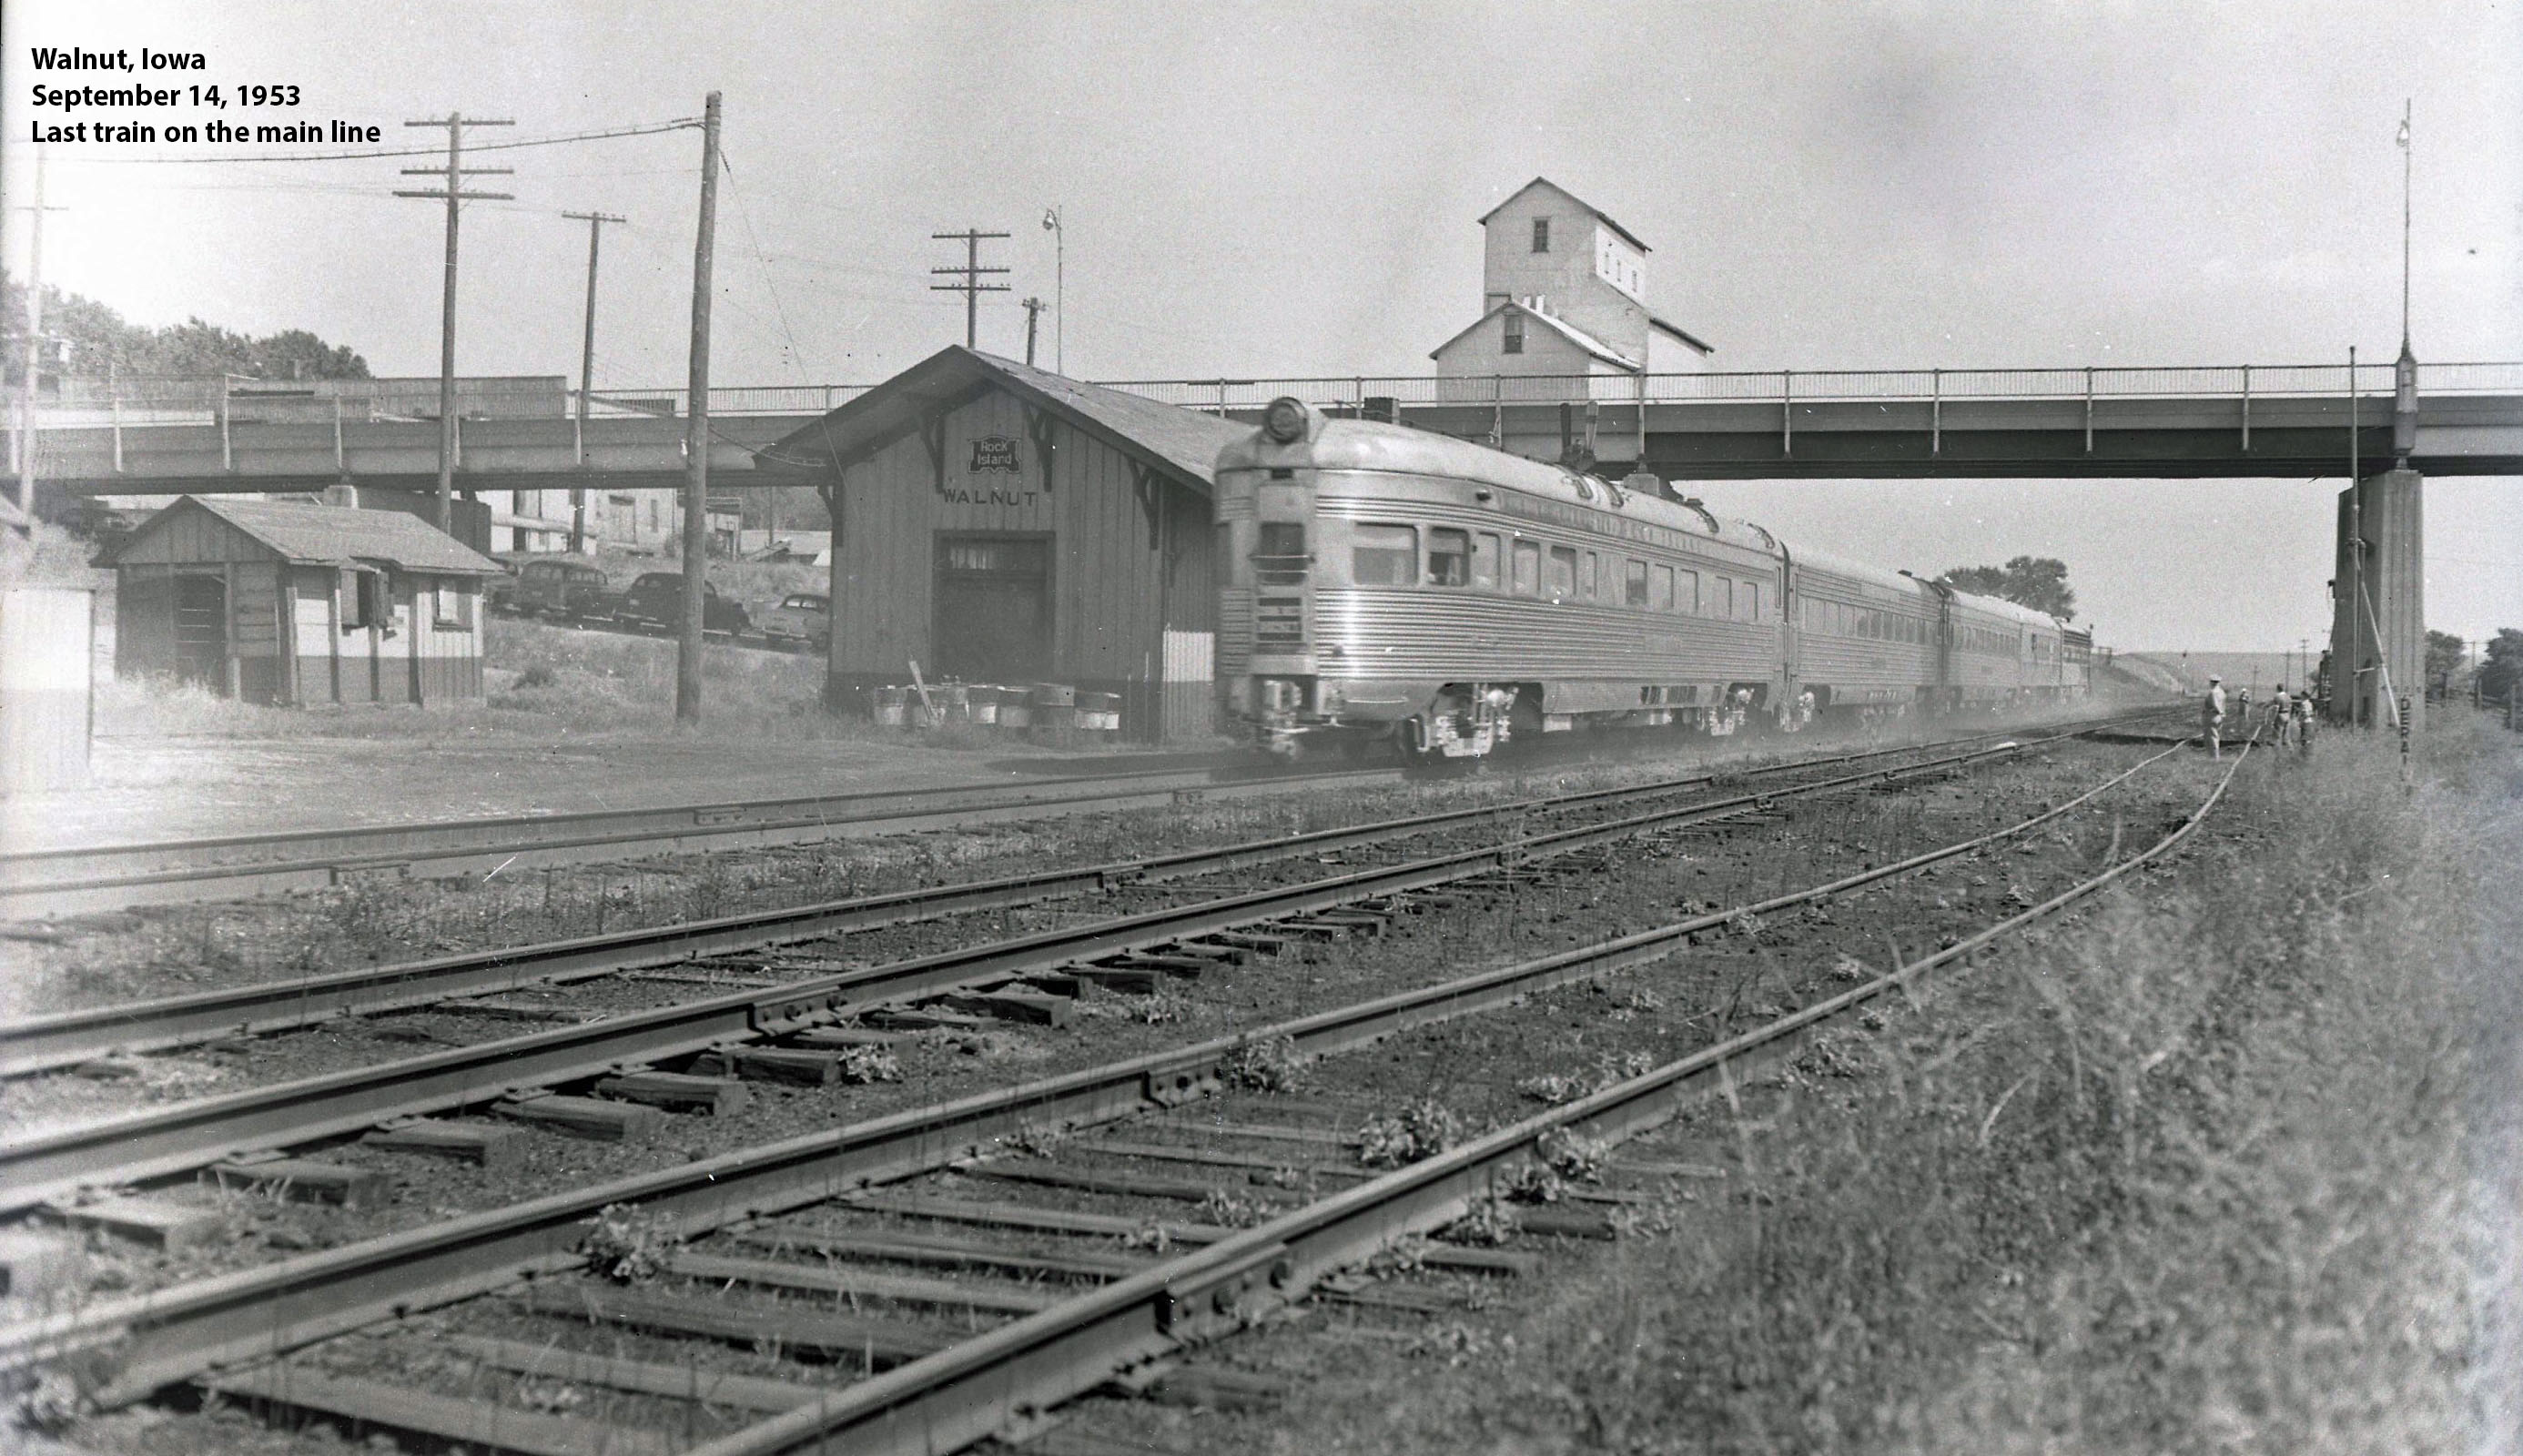 depot Sept 1953 last train for the mainline